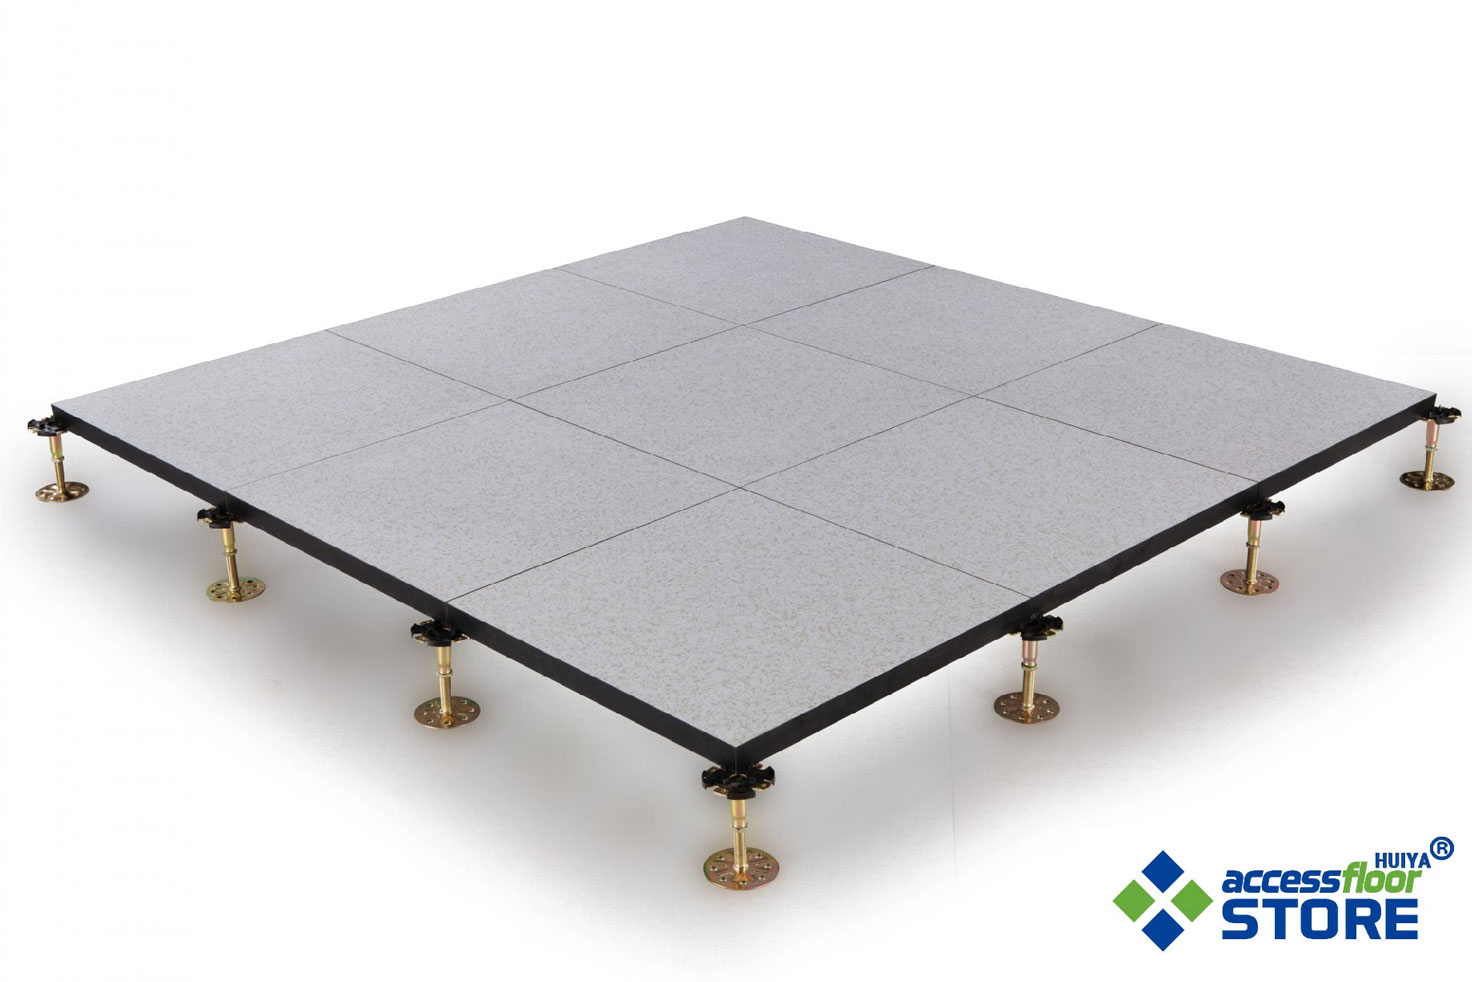 Huiya Raised Floor - Access Flooring System.jpg